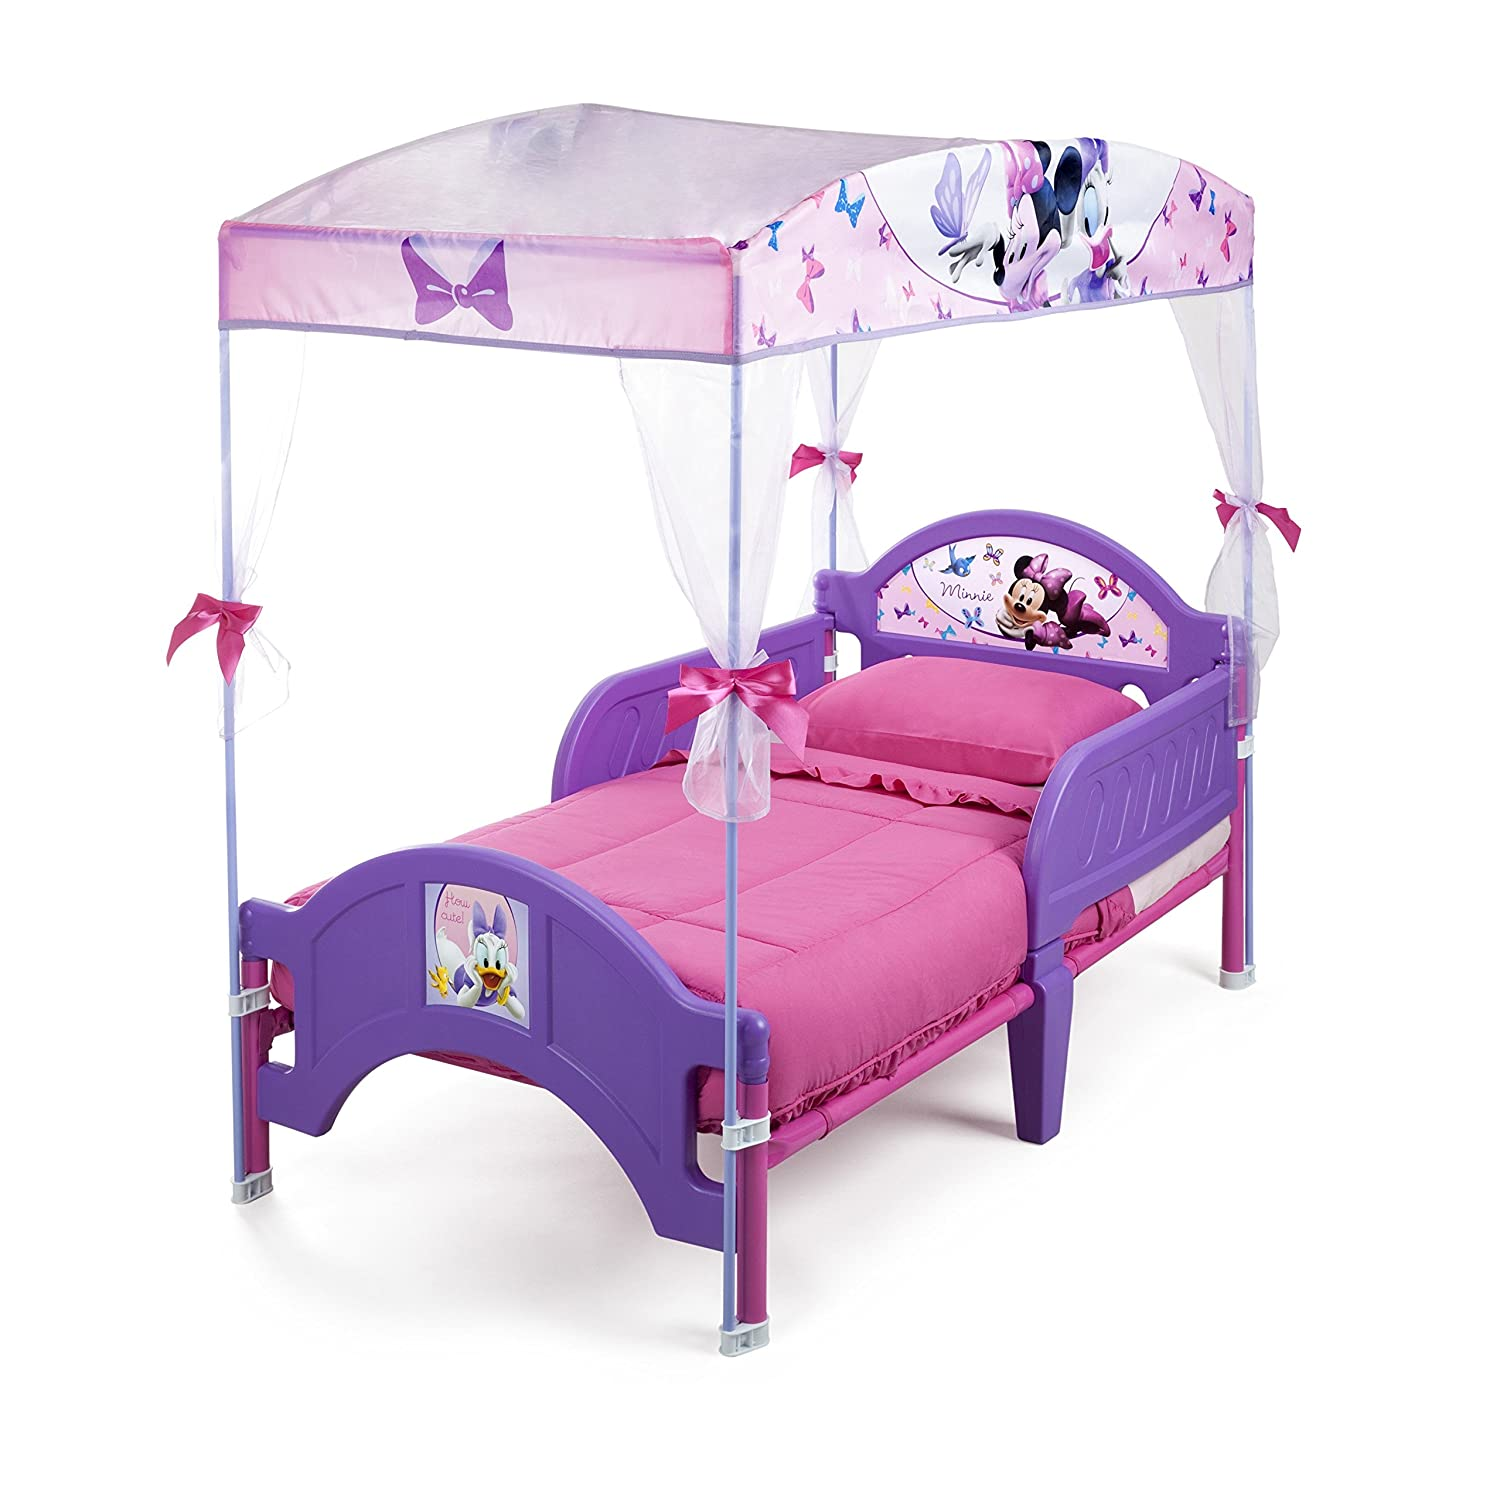 Amazon.com Delta Childrenu0027s Products Minnie Mouse Canopy Toddler Bed Toys u0026 Games  sc 1 st  Amazon.com & Amazon.com: Delta Childrenu0027s Products Minnie Mouse Canopy Toddler ...